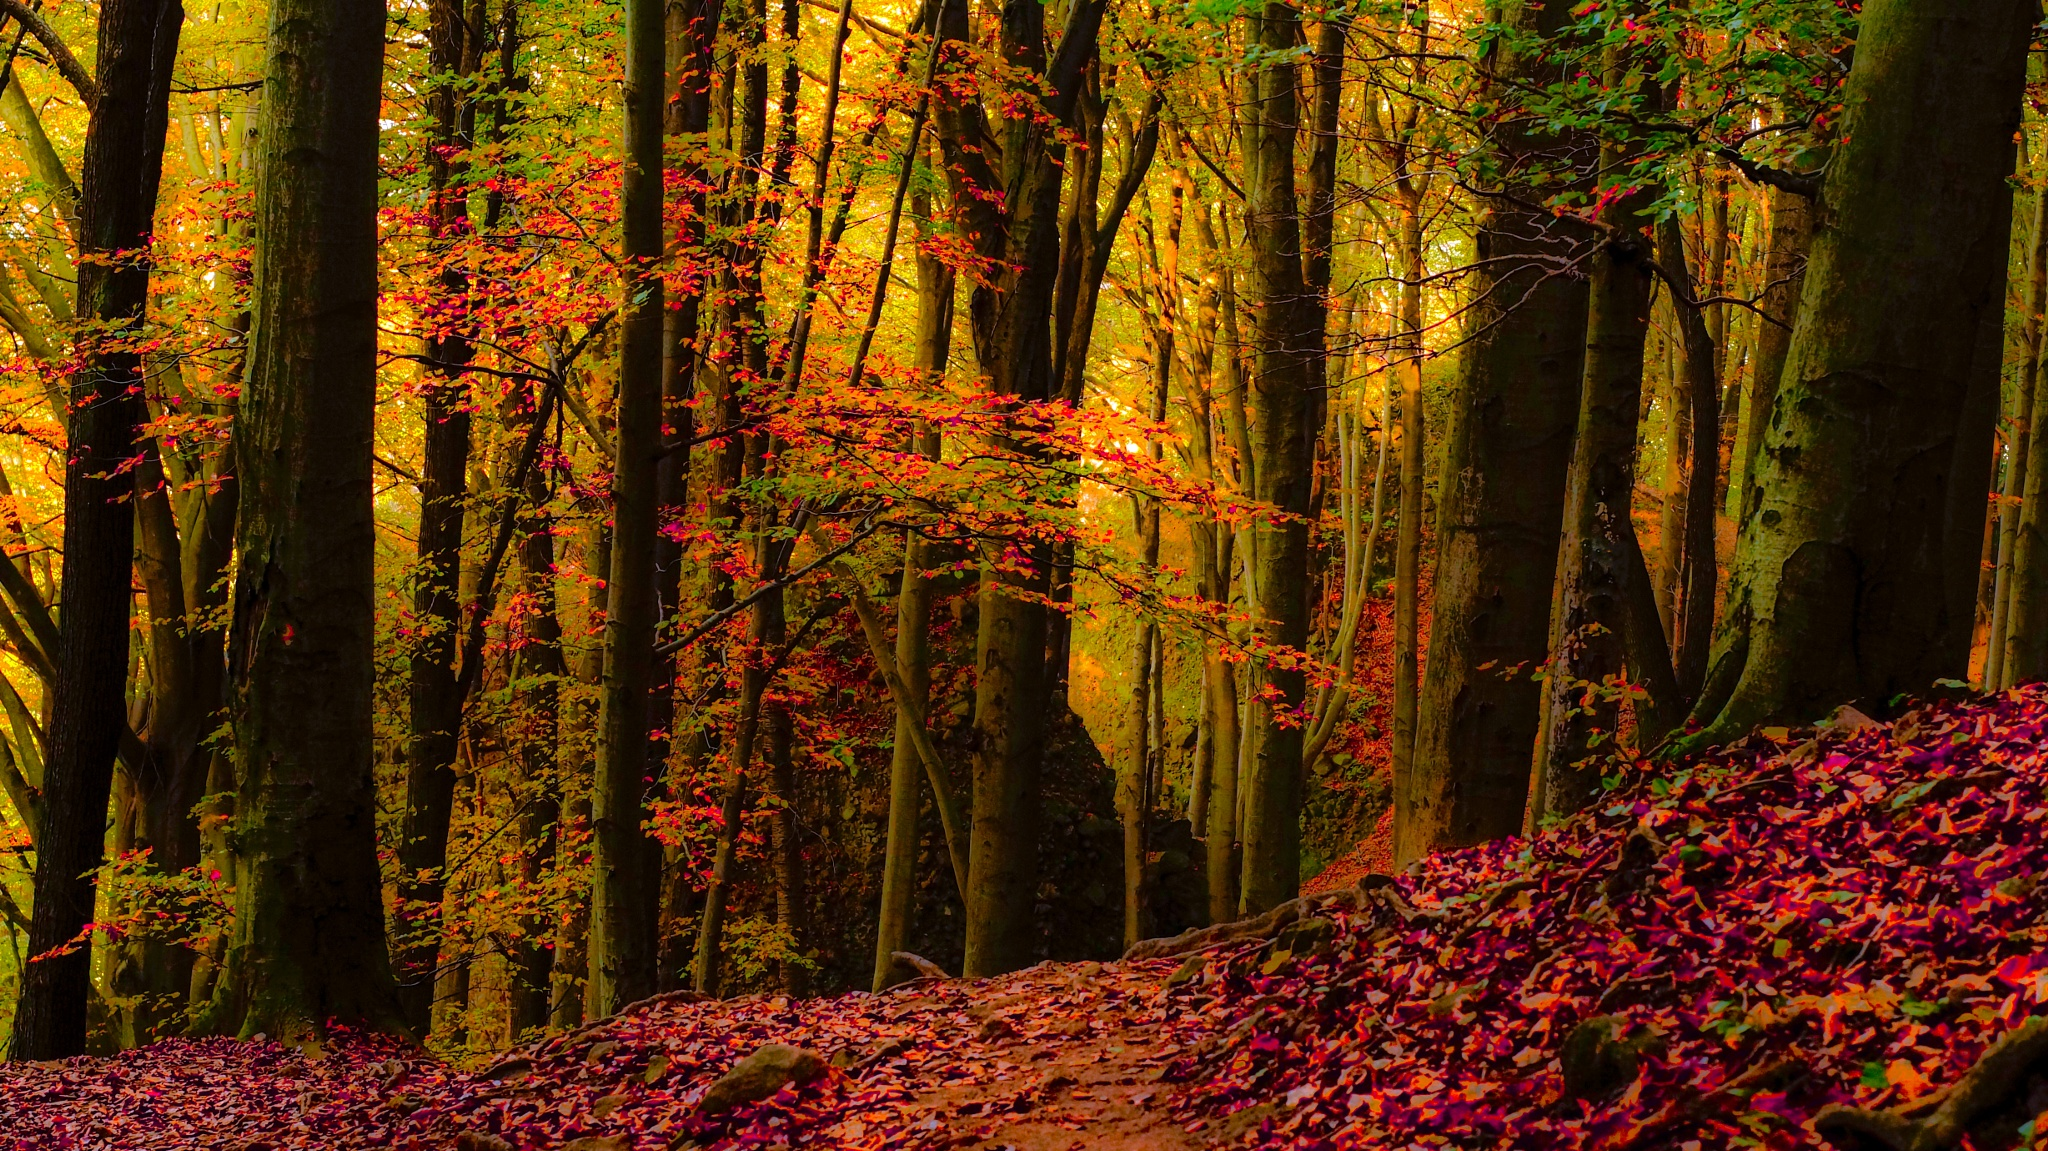 Autumn Forest by Tamas Filep